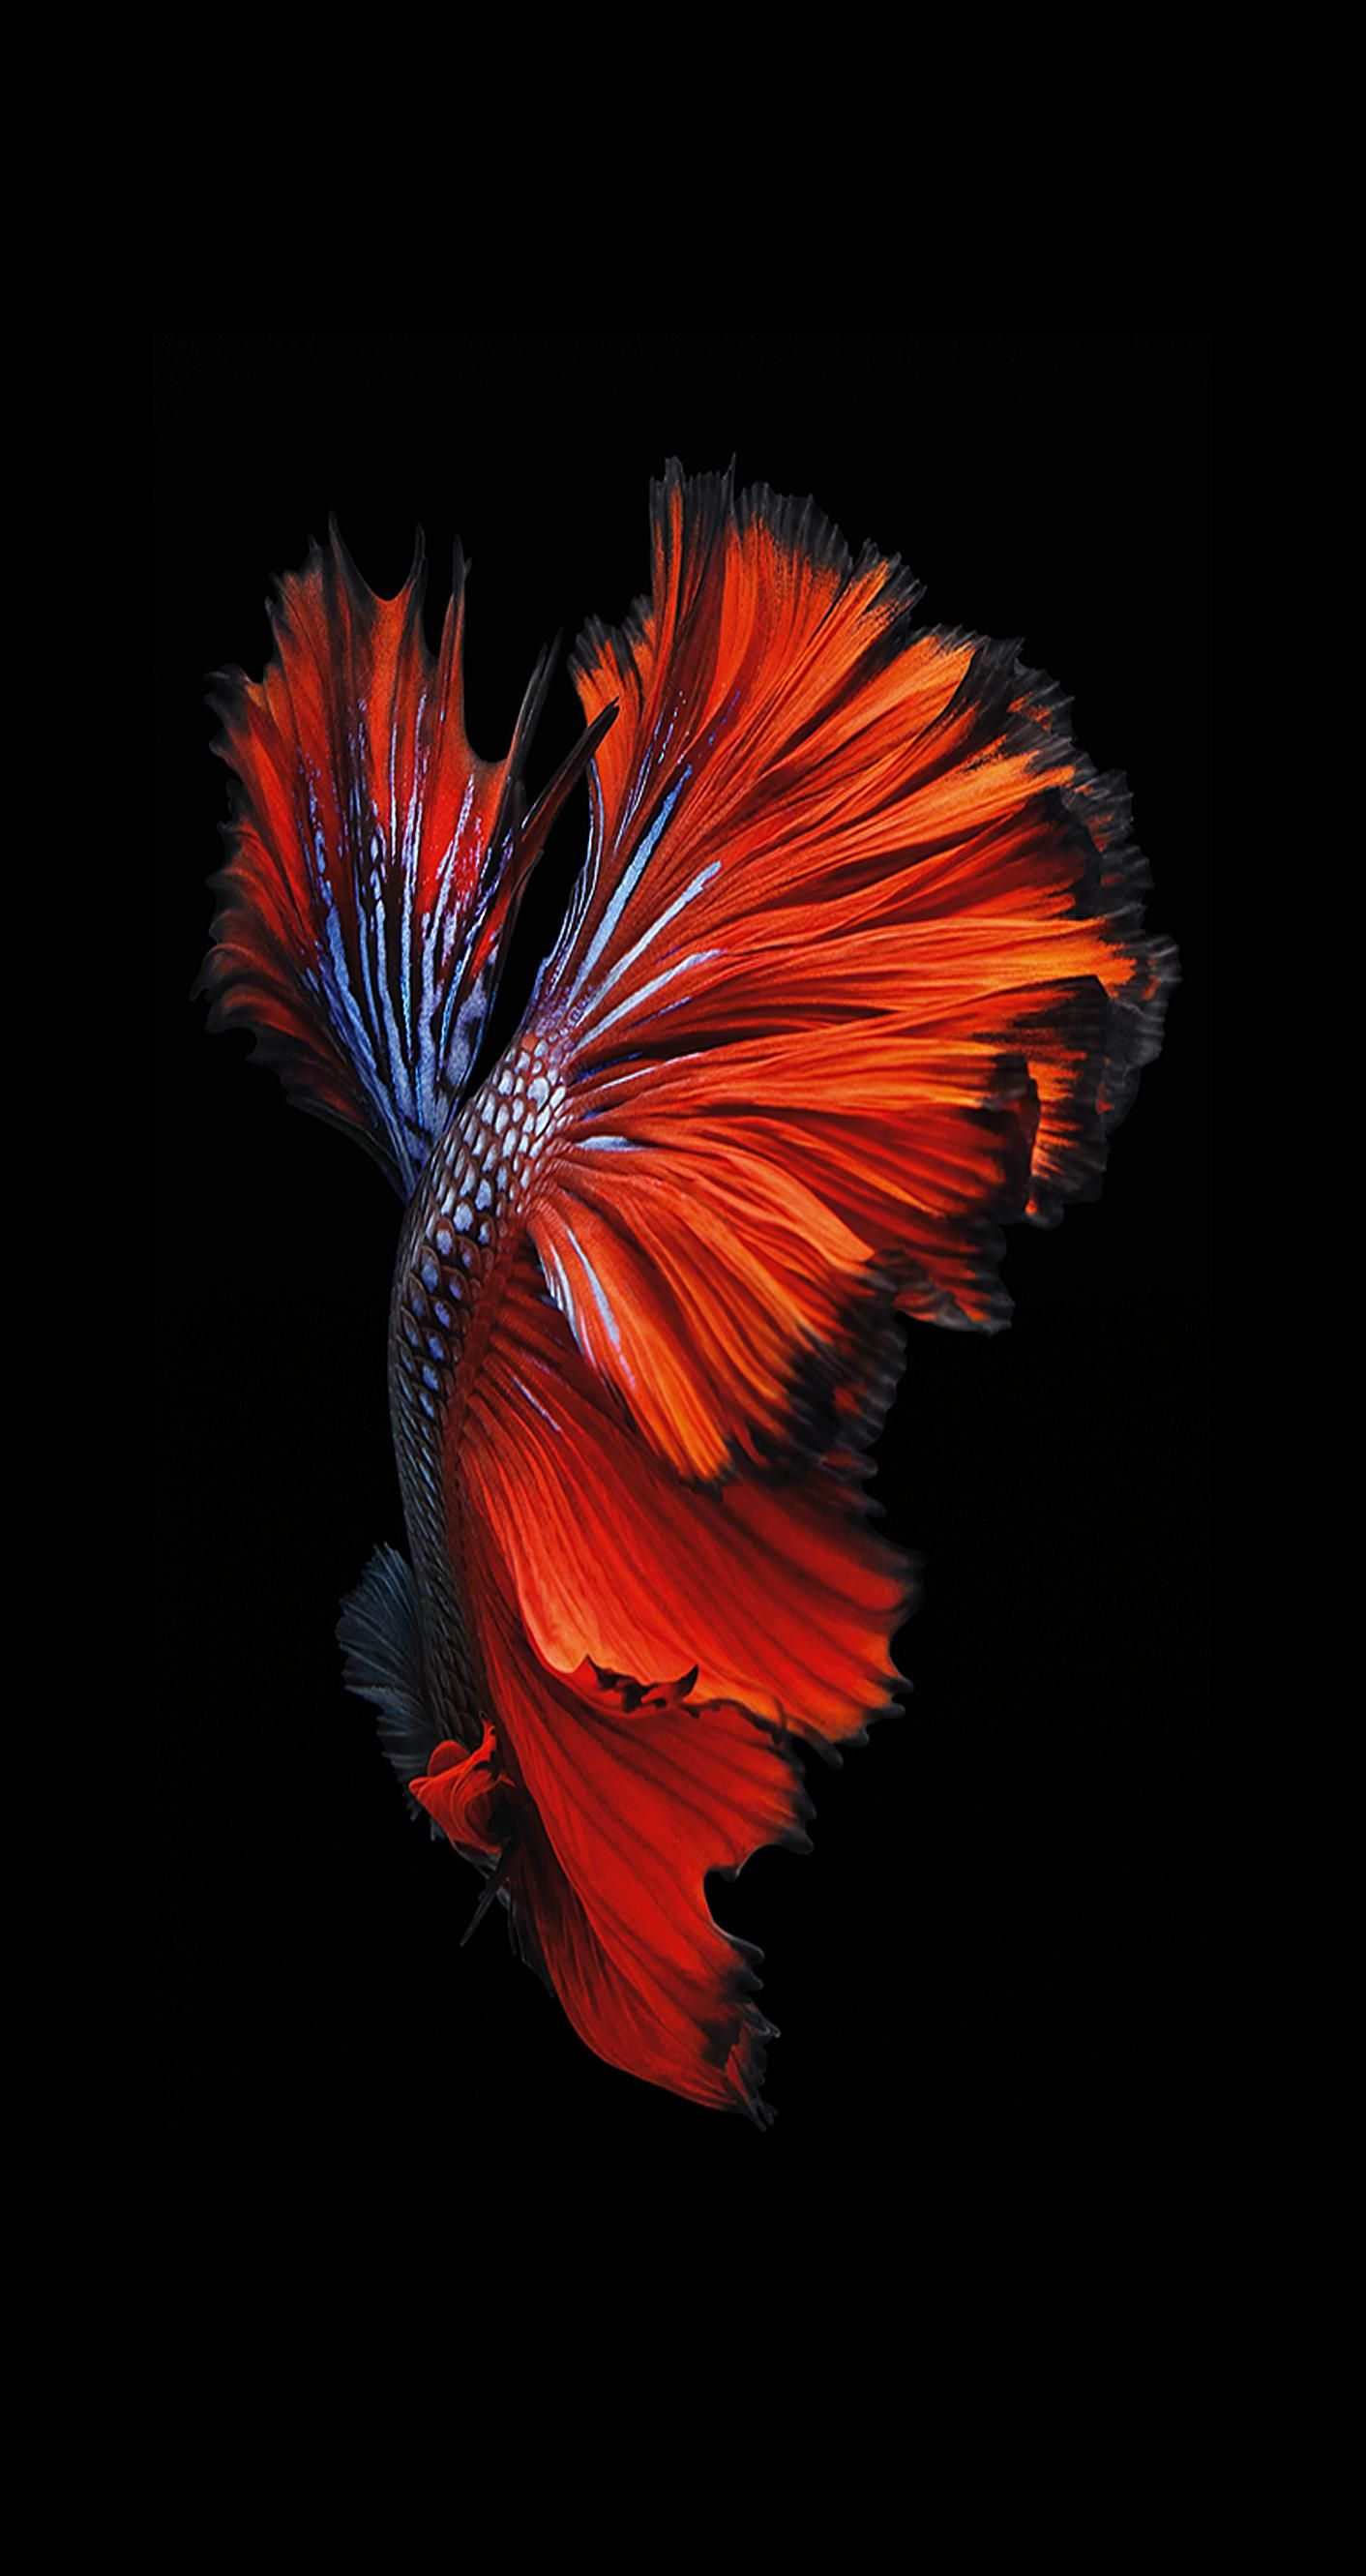 Animated Wallpaper n.4 from iPhone 6s and iOS 9 | iSpazio.net | All Wallpapers | Pinterest ...